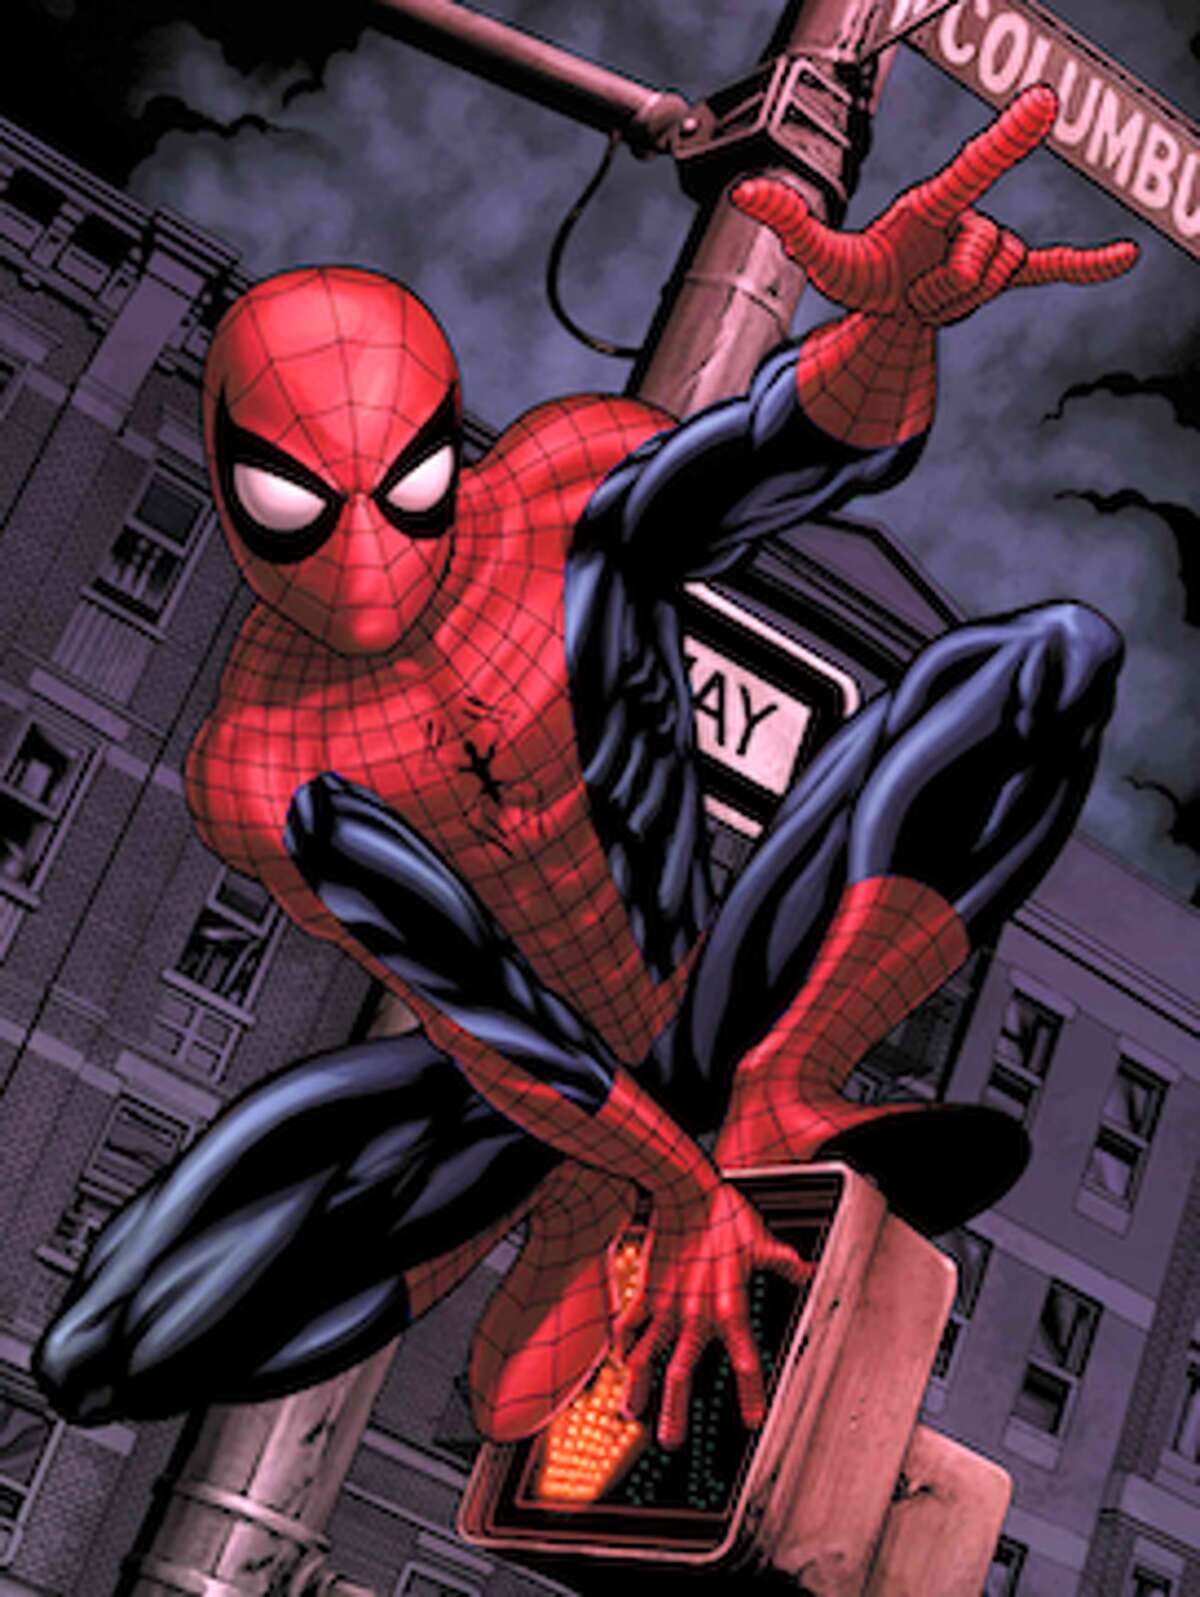 Spiderman is one of the most popular comic book superheroes.